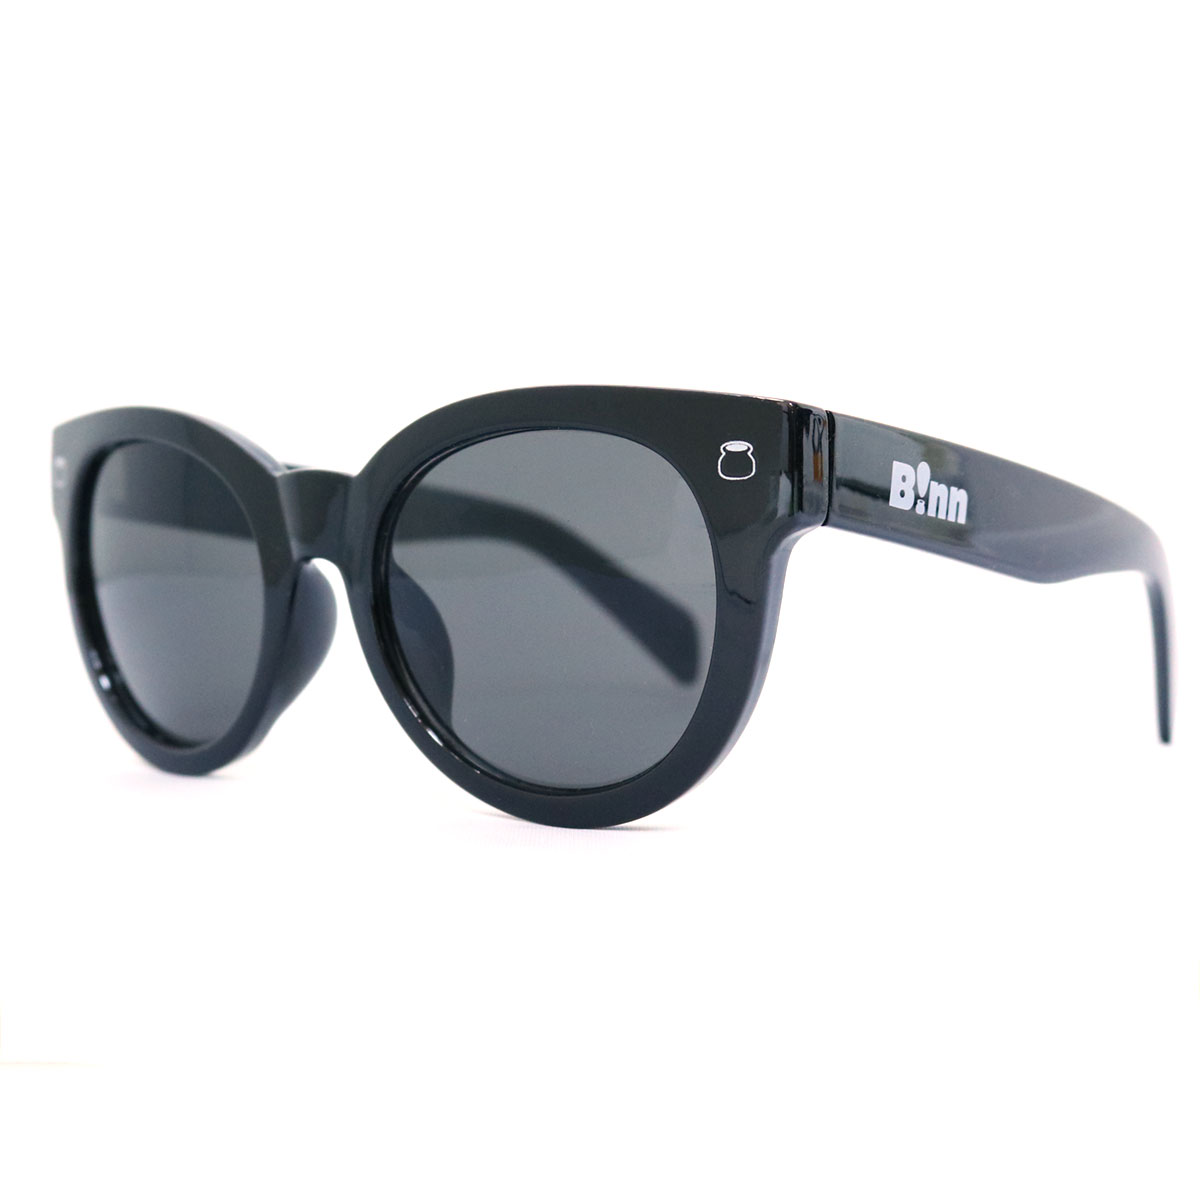 BOSTON 2 SUN GLASS BK